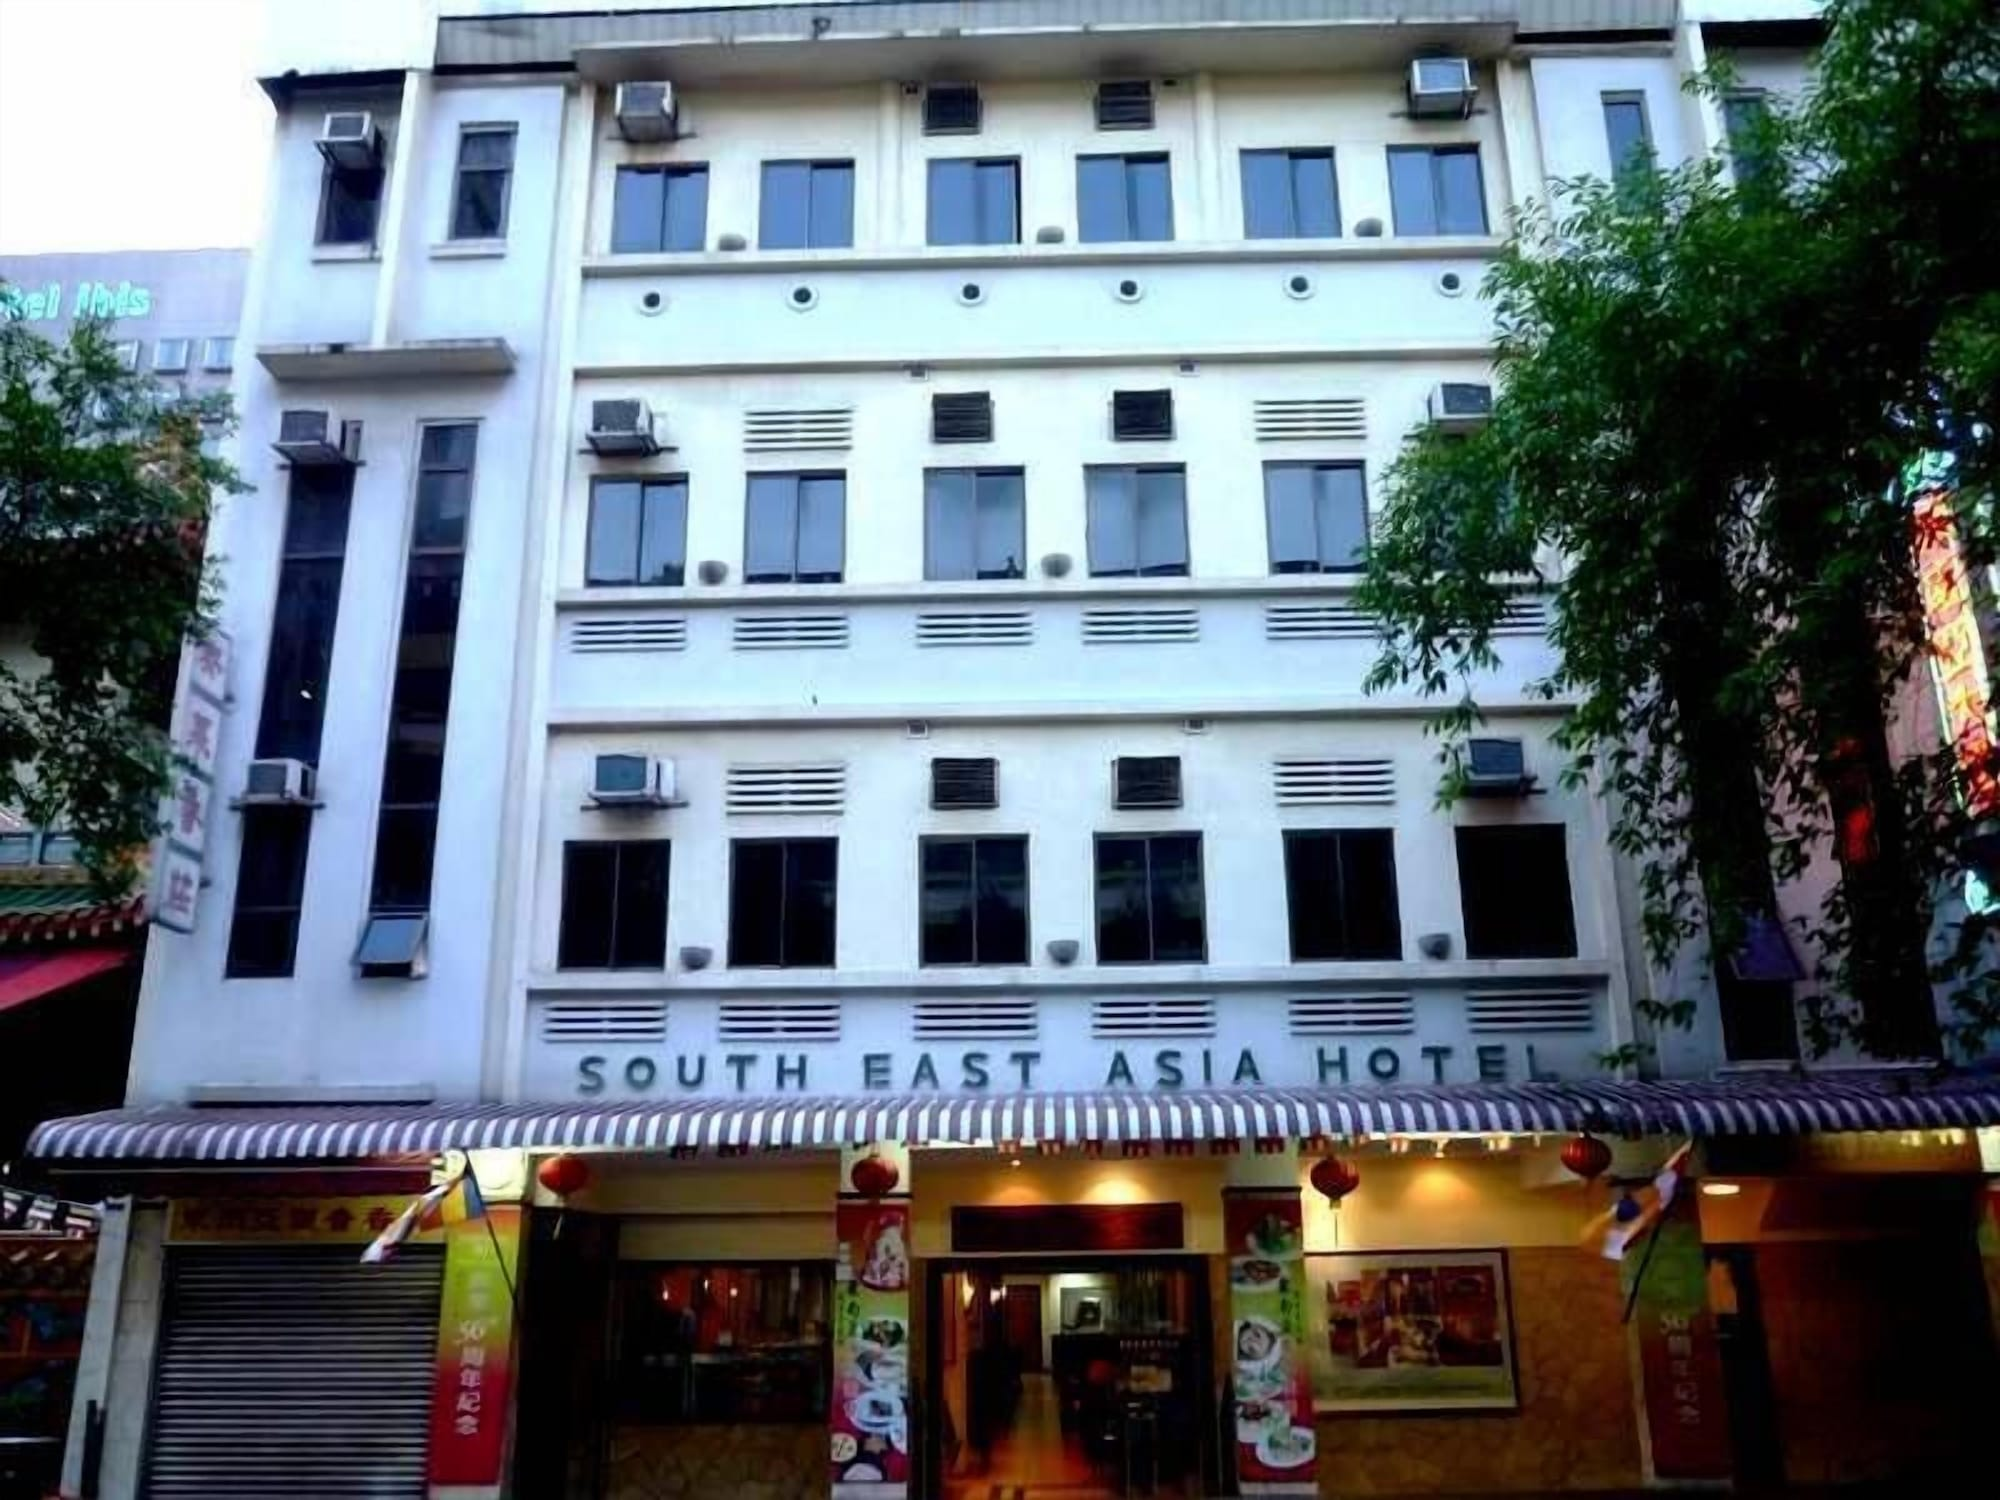 South East Asia Hotel, Rochor